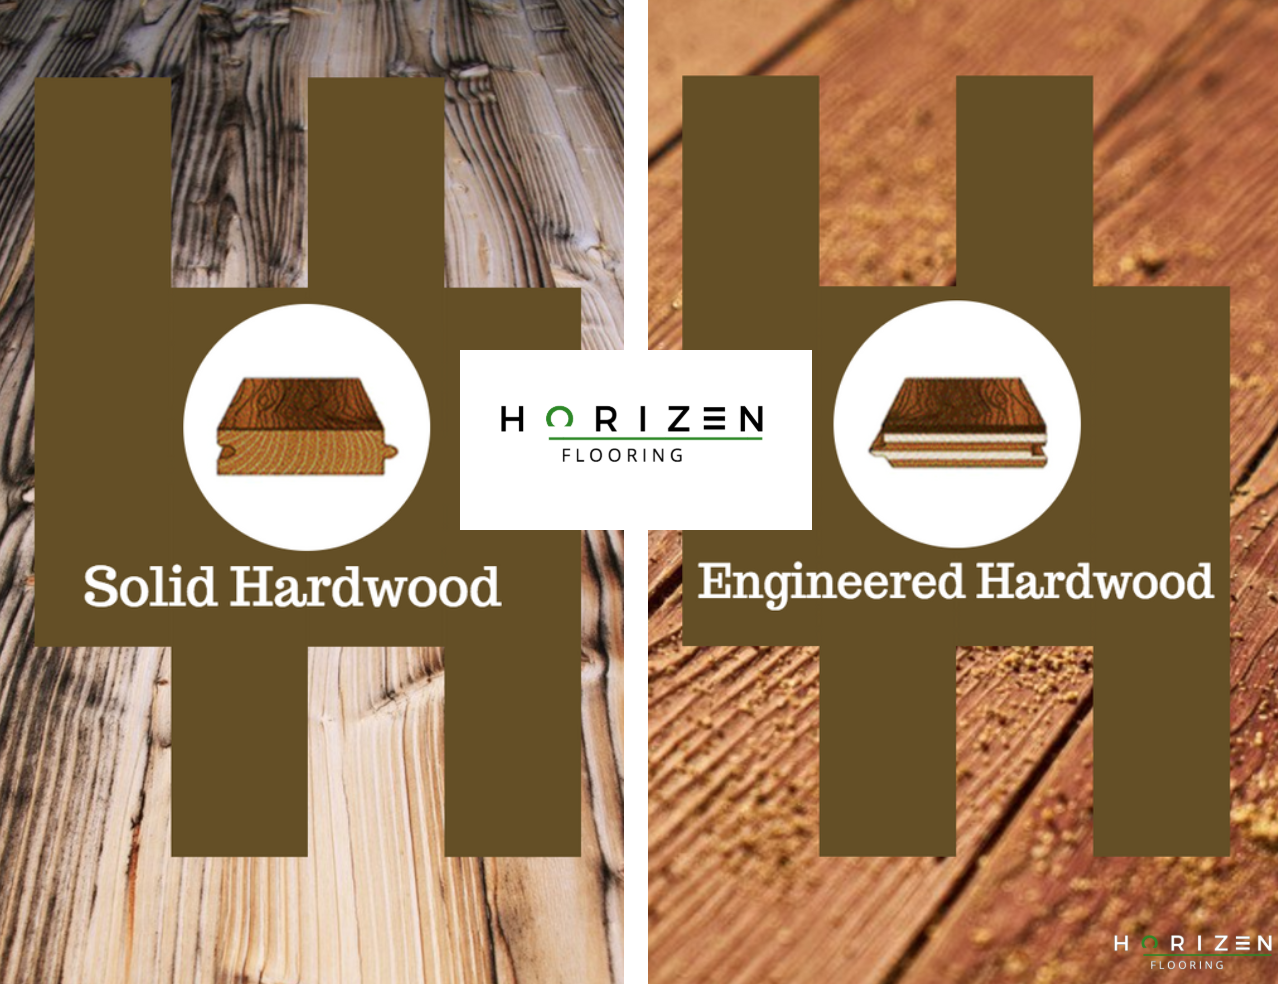 Horizen Flooring presents to you the difference between Solid Hardwood and Engineered Hardwood. Horizen Flooring offers full turnkey flooring services to the Greater Austin and surrounding areas, specialising but not limited to: hardwood, vinyl, laminate, carpet, and tile. For more information, call (512) 806-9434 today.